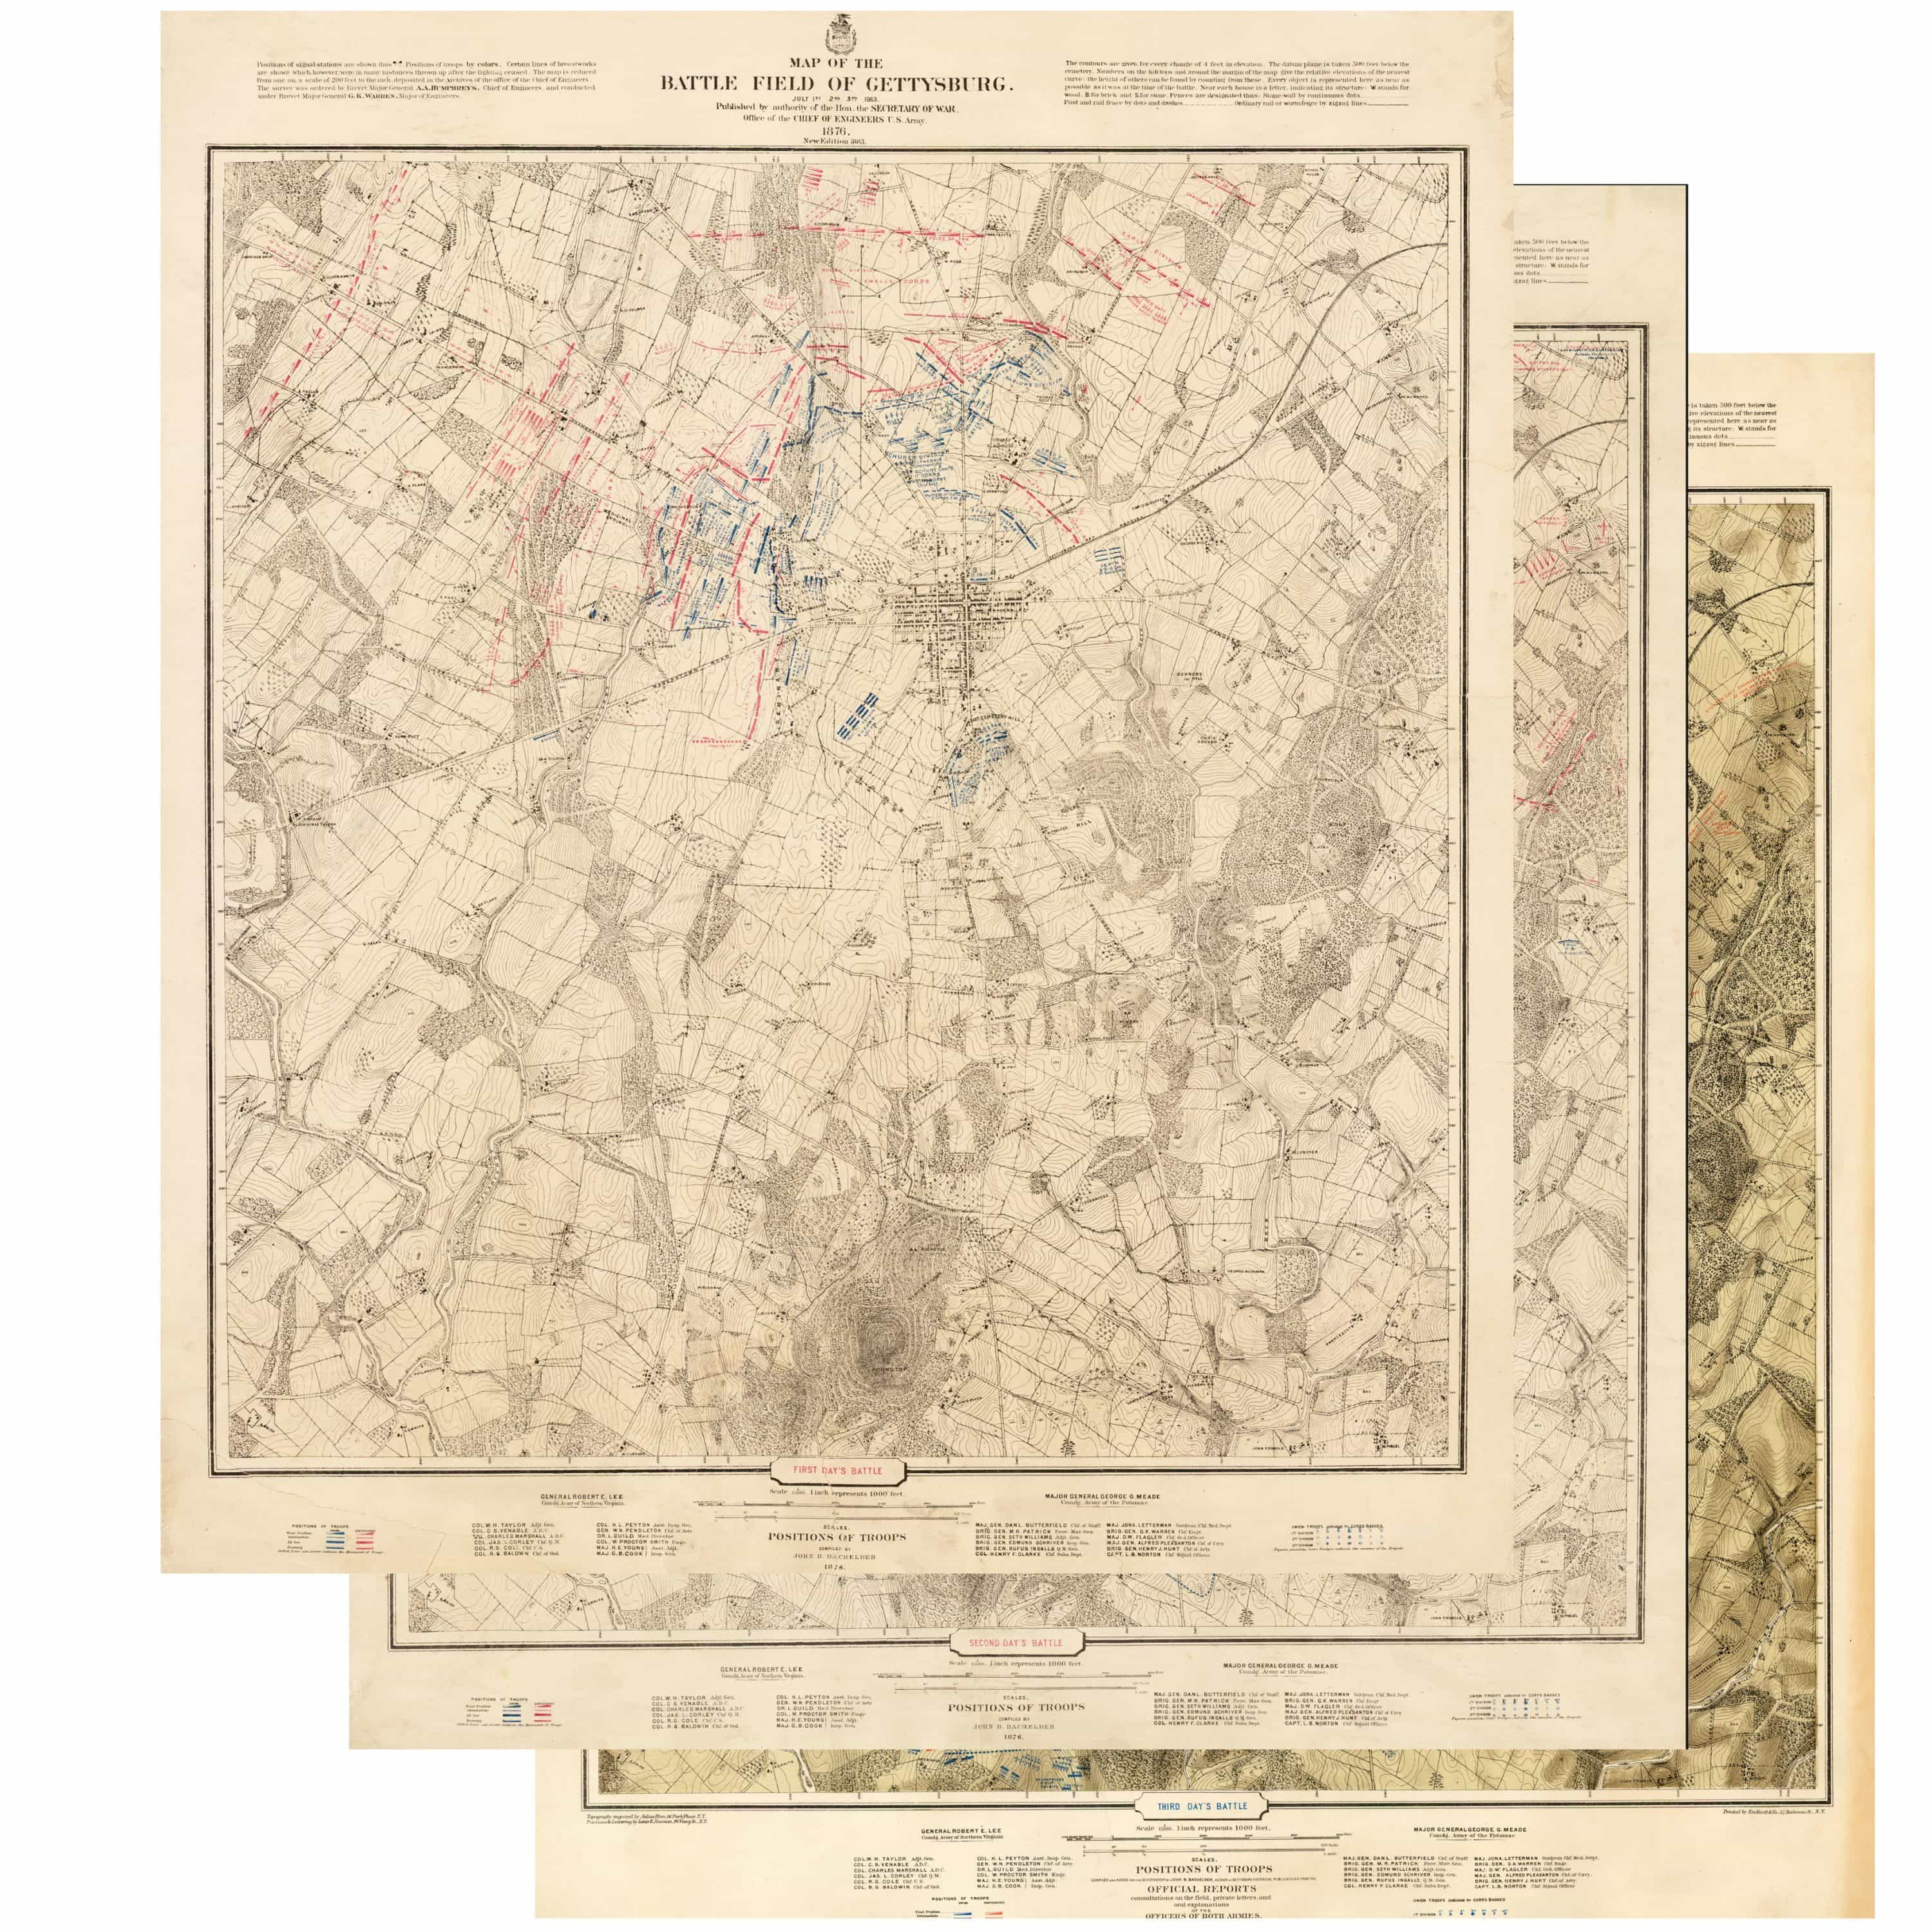 Gettysburg Topographic Map.Bachelder S Monumental Maps Of The Battle Of Gettysburg Rare